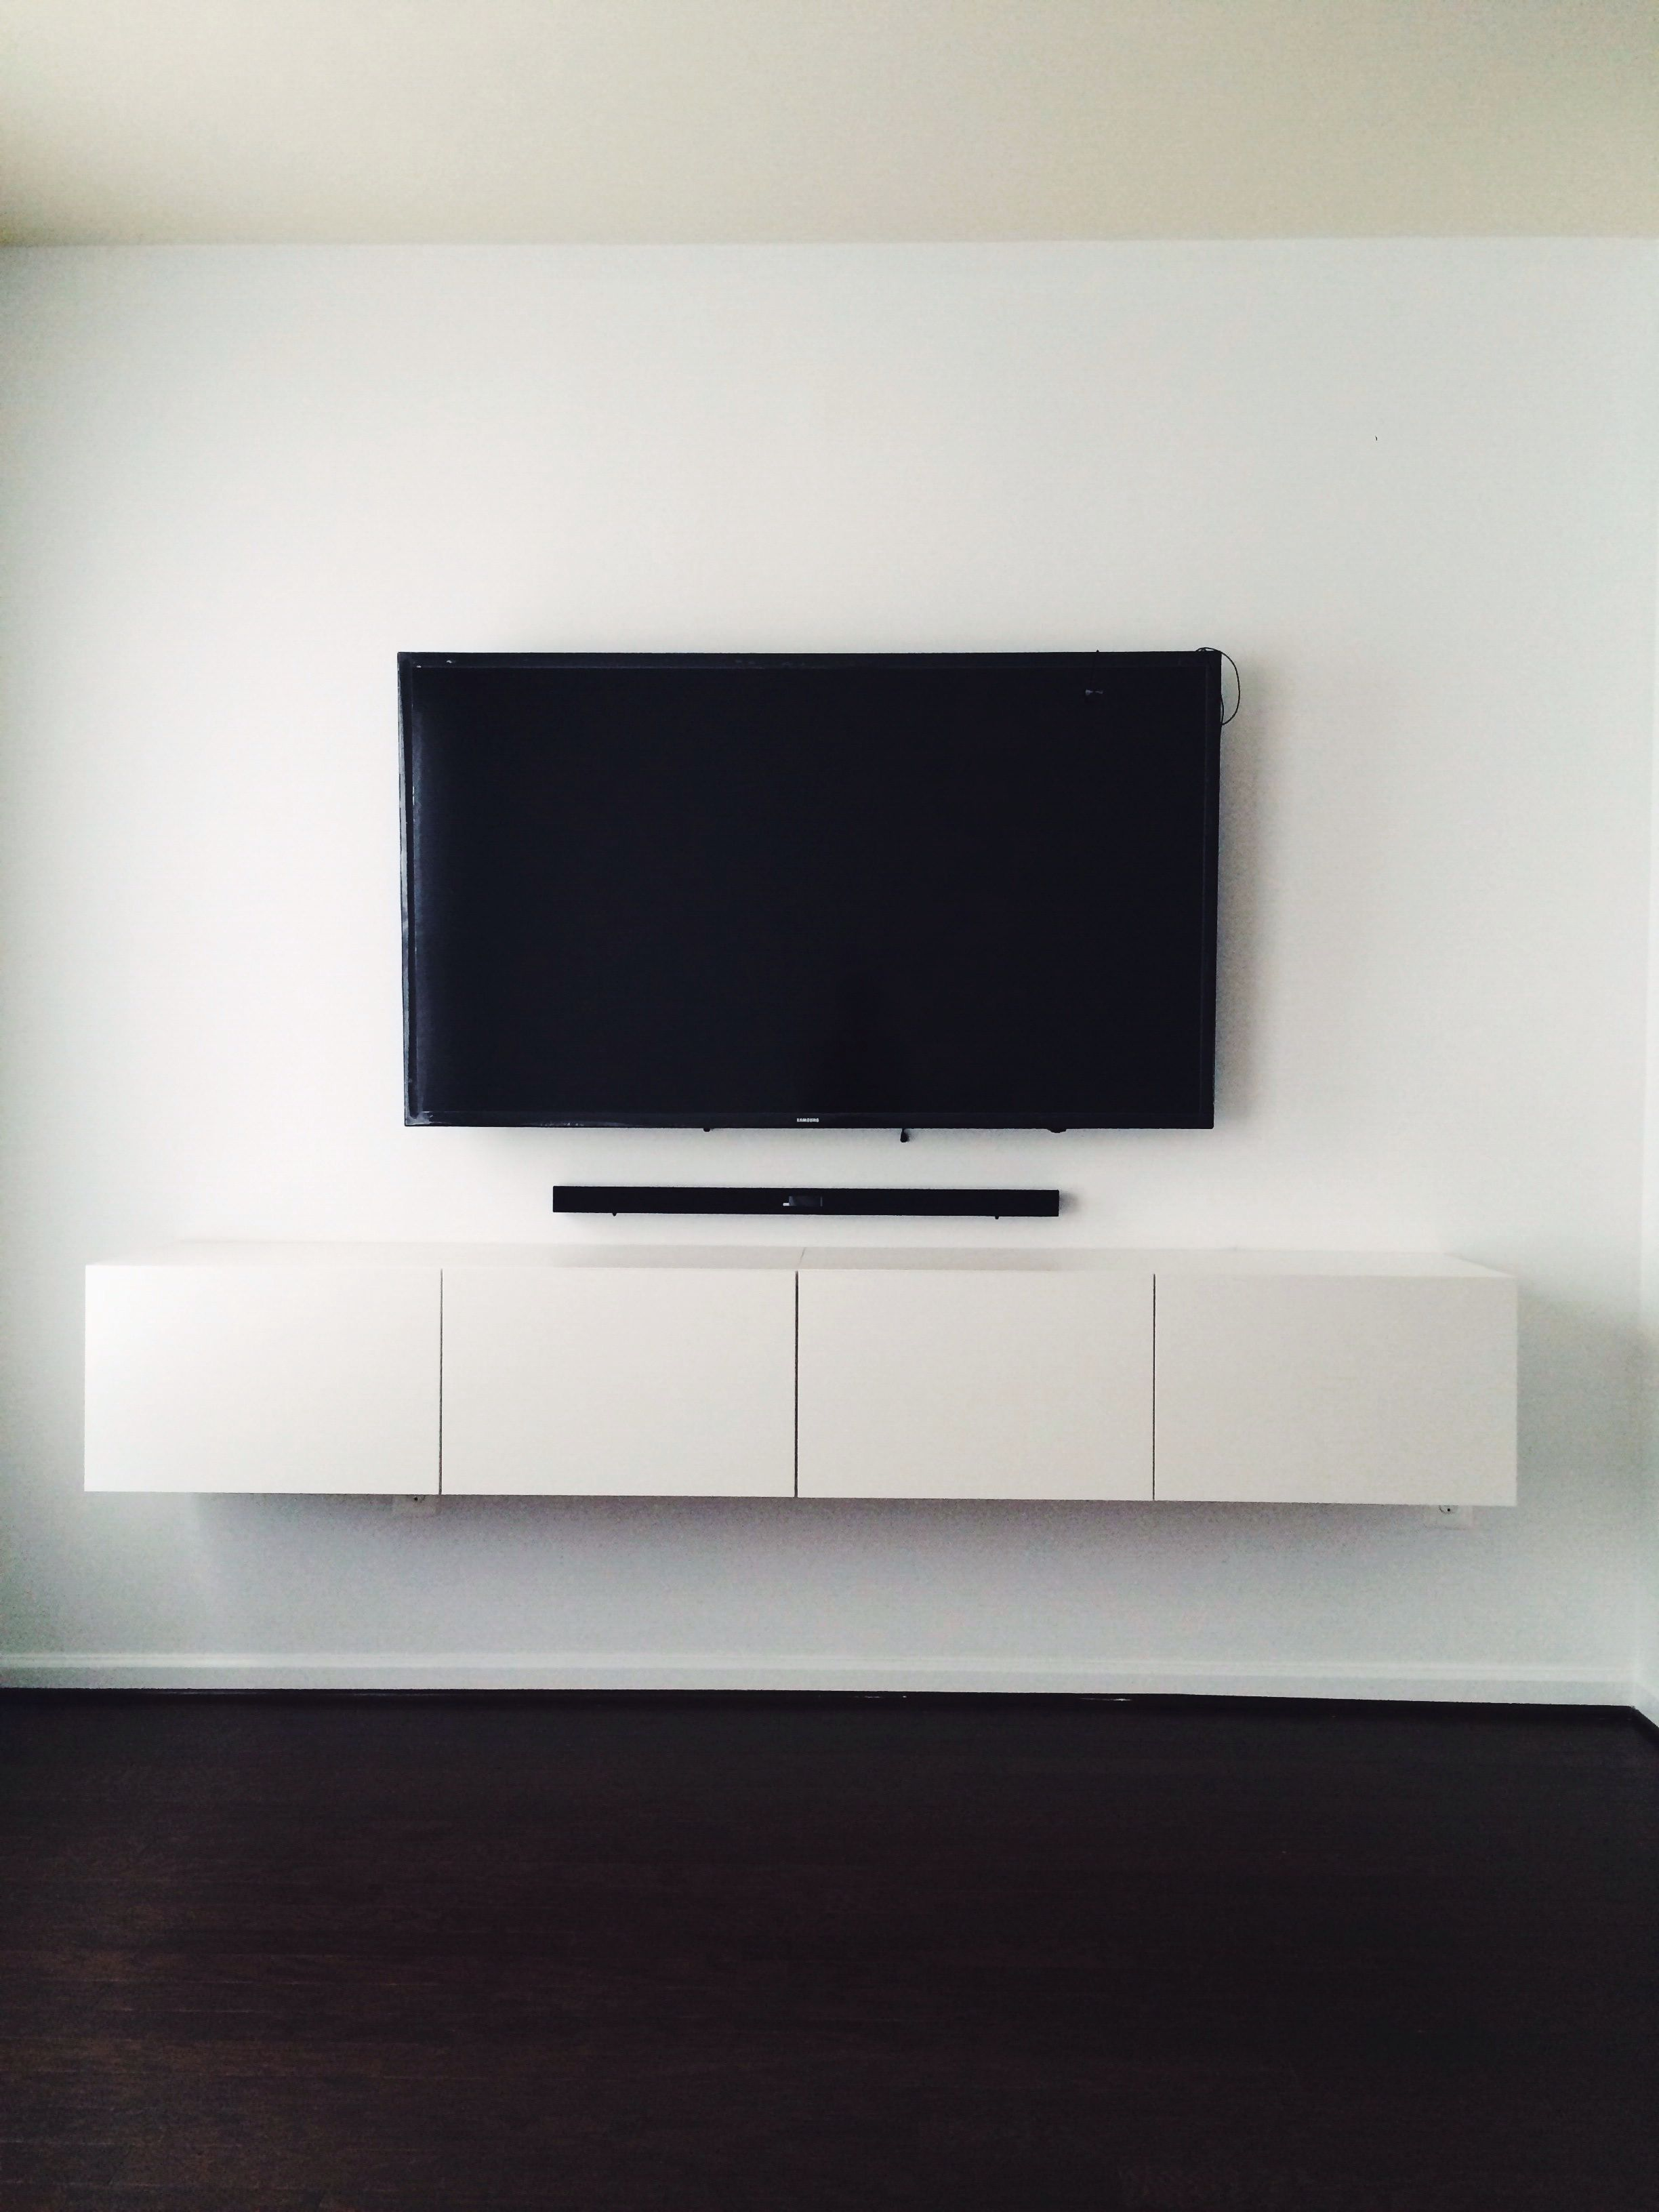 ikea bestÅ media console mounted tv with hidden wires now that's clean. ikea hackers besta floating media center we did this in black